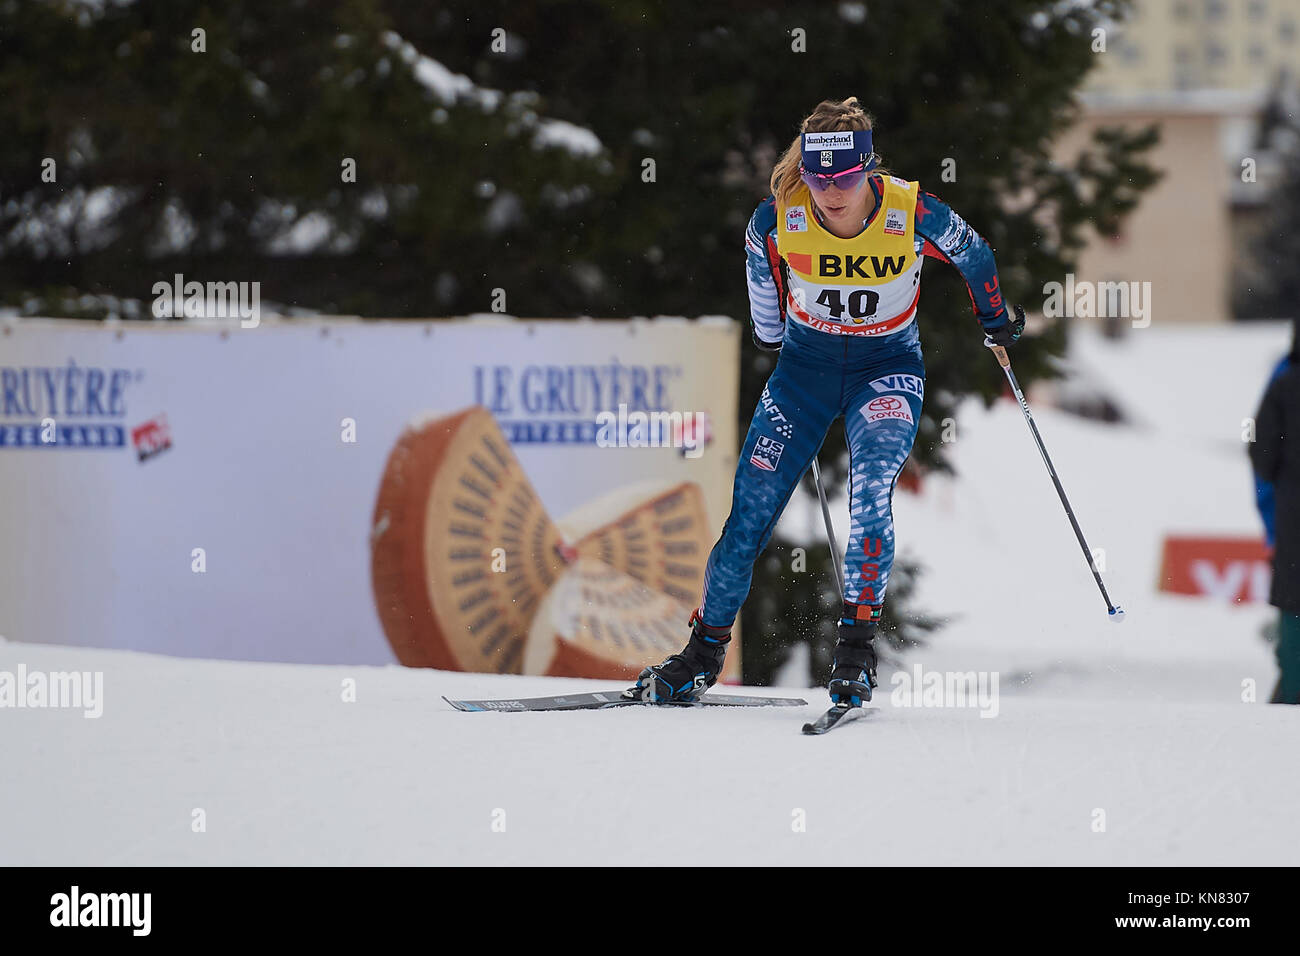 Davos, Switzerland, 10th December 2017. DIGGINS Jessica (USA) during the Ladies' 10 km F competition at the FIS - Stock Image